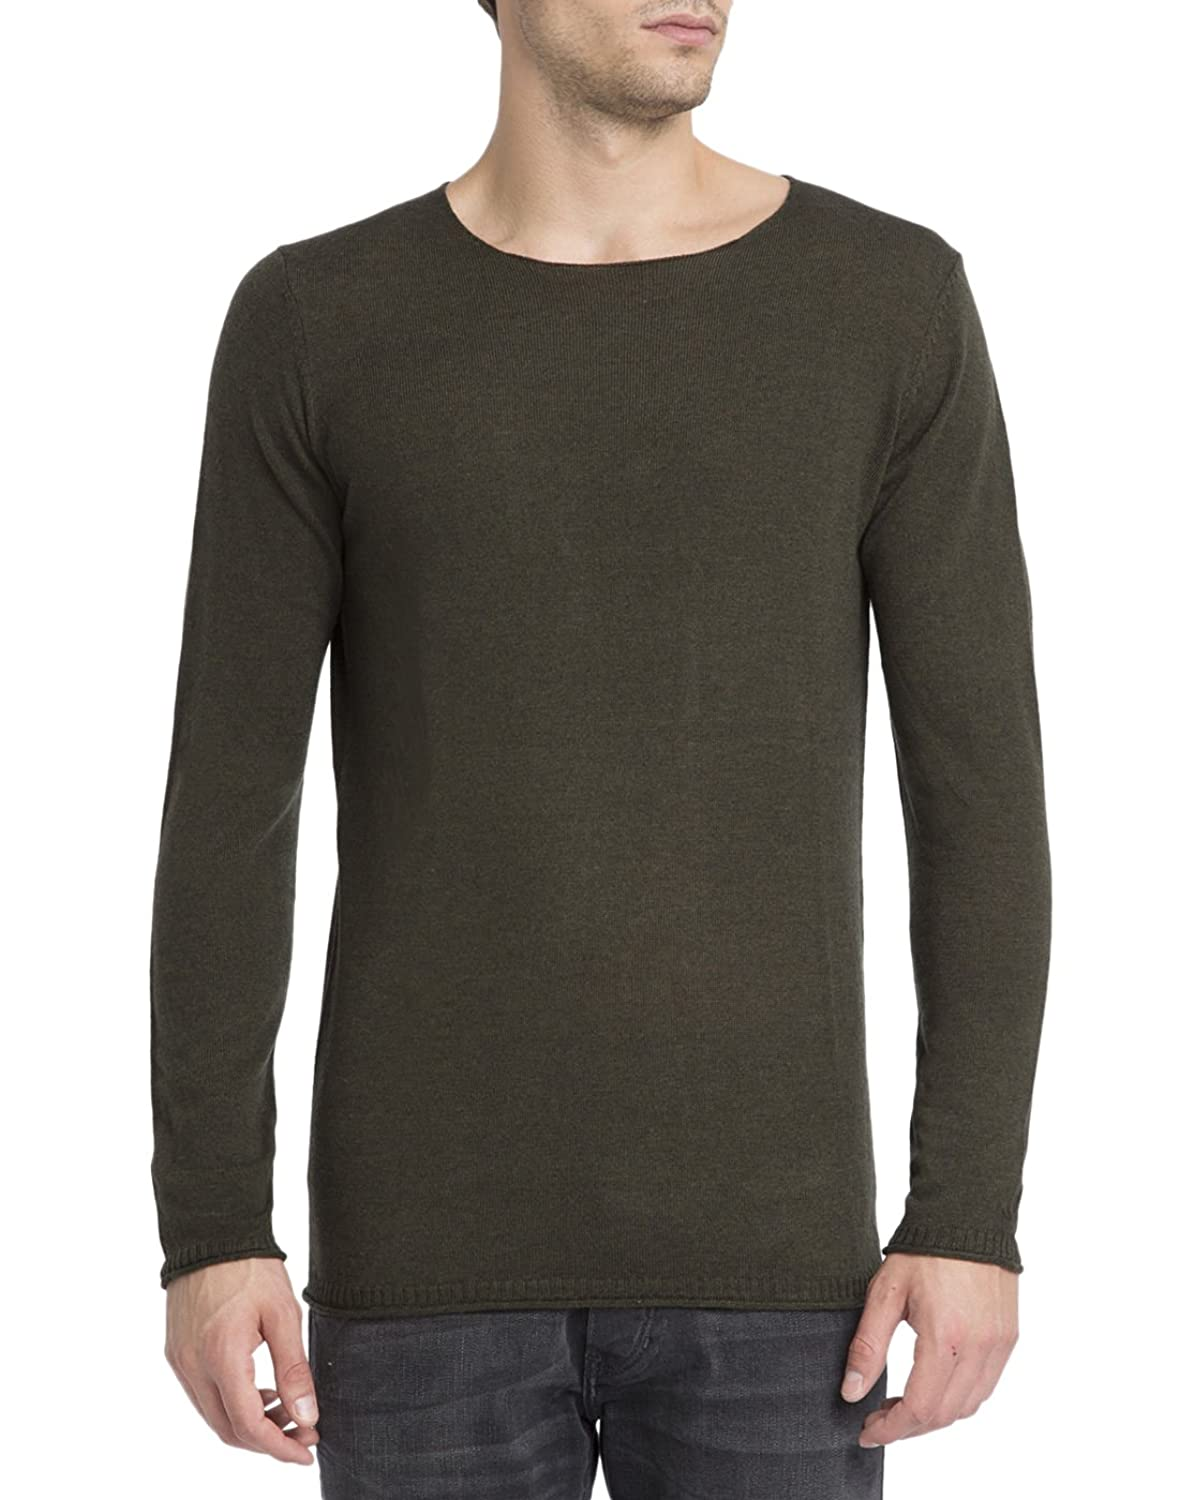 NOWADAYS - Crew-neck Sweaters - Men - Green Cashmere Round-Neck Sweater for men